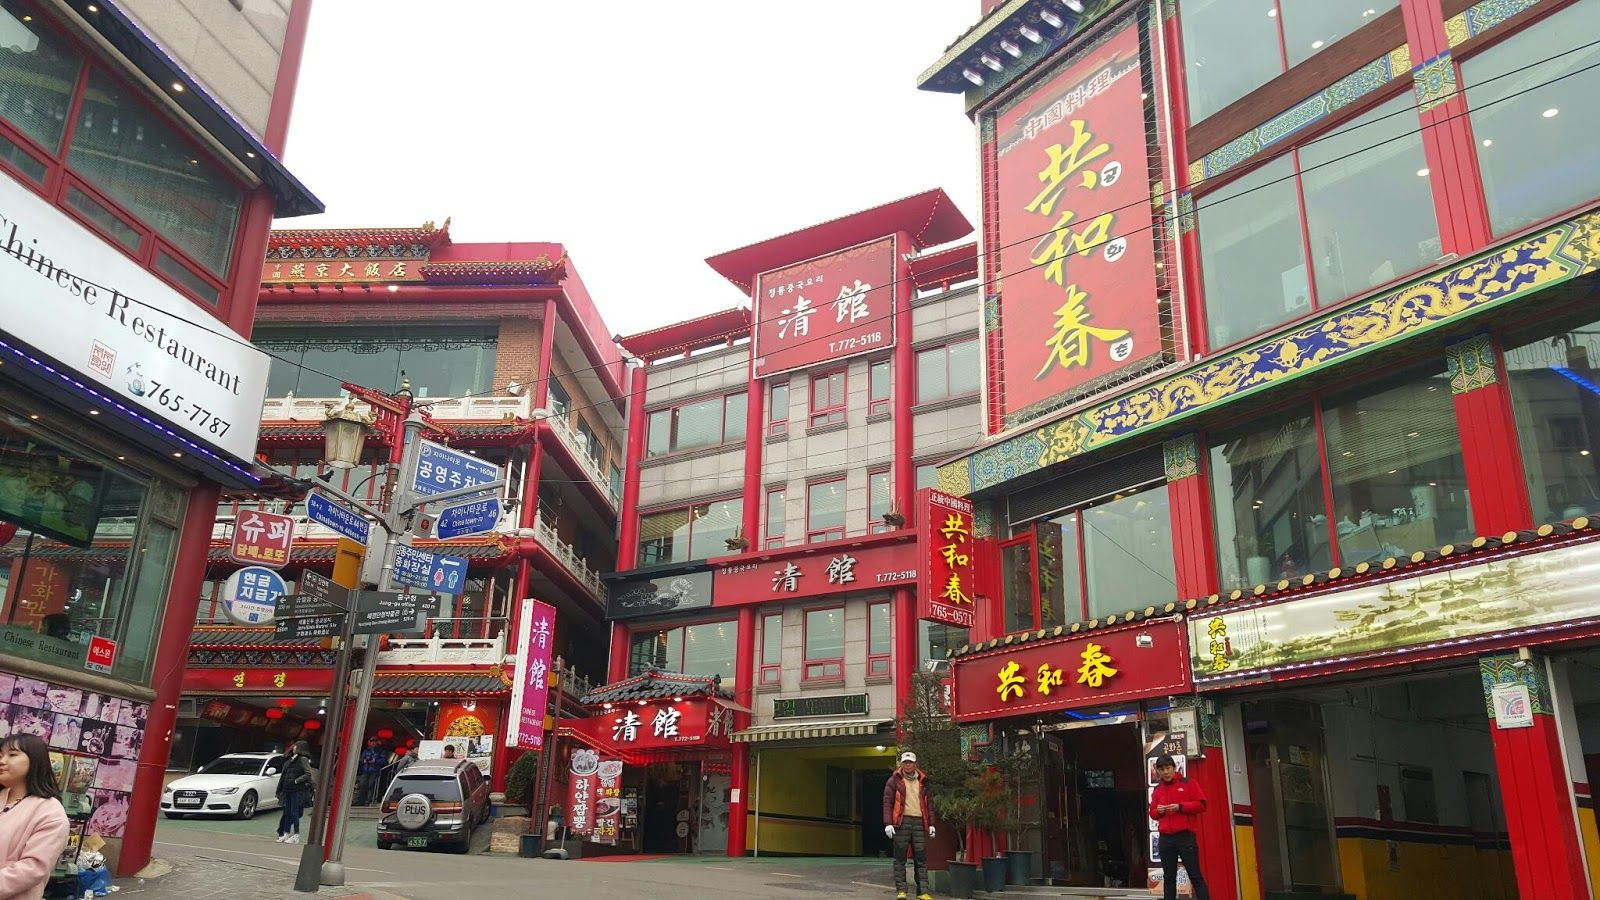 Suasana di Incheon Chinatown